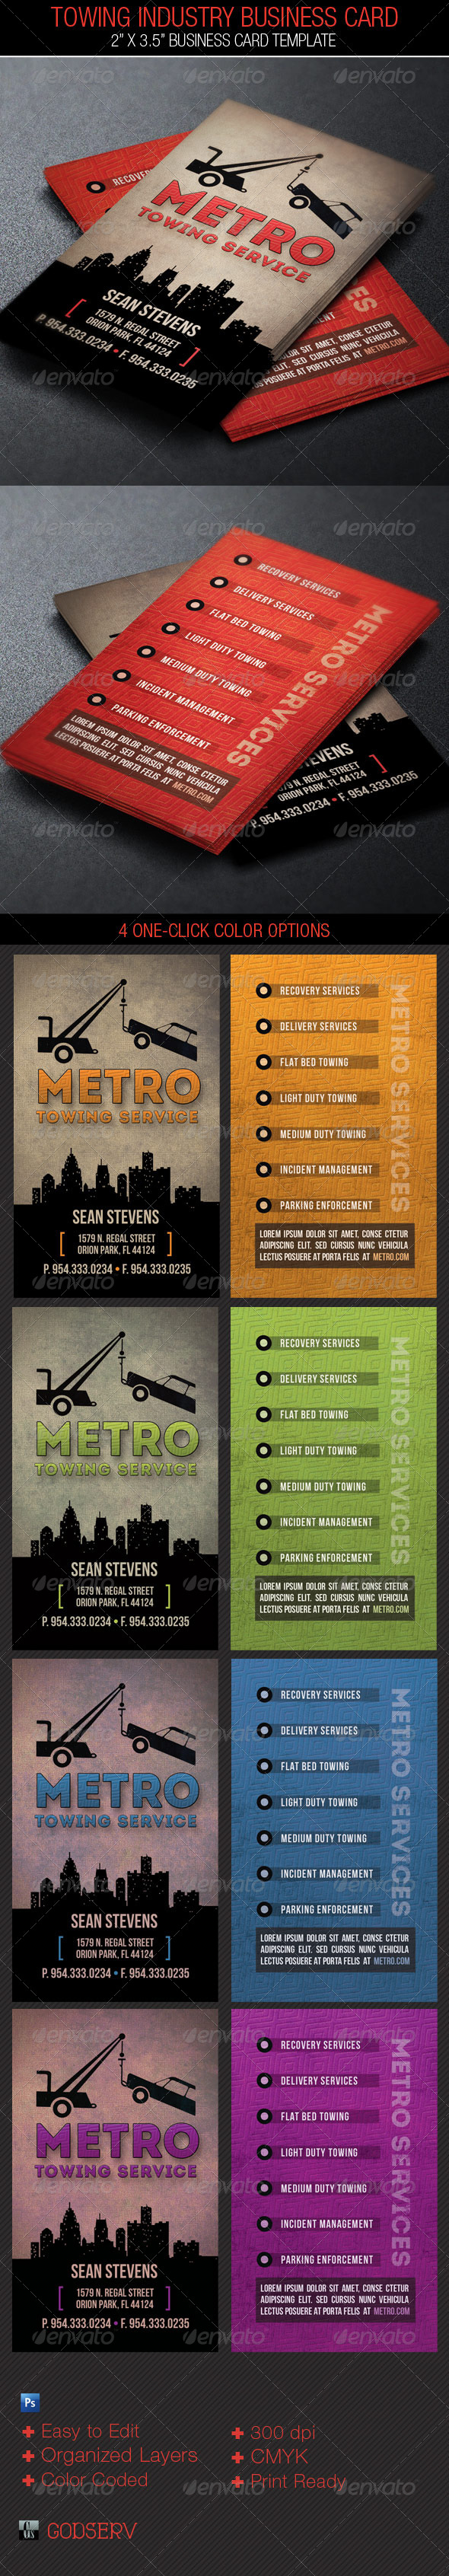 GraphicRiver Towing Industry Business Card Template 4793369